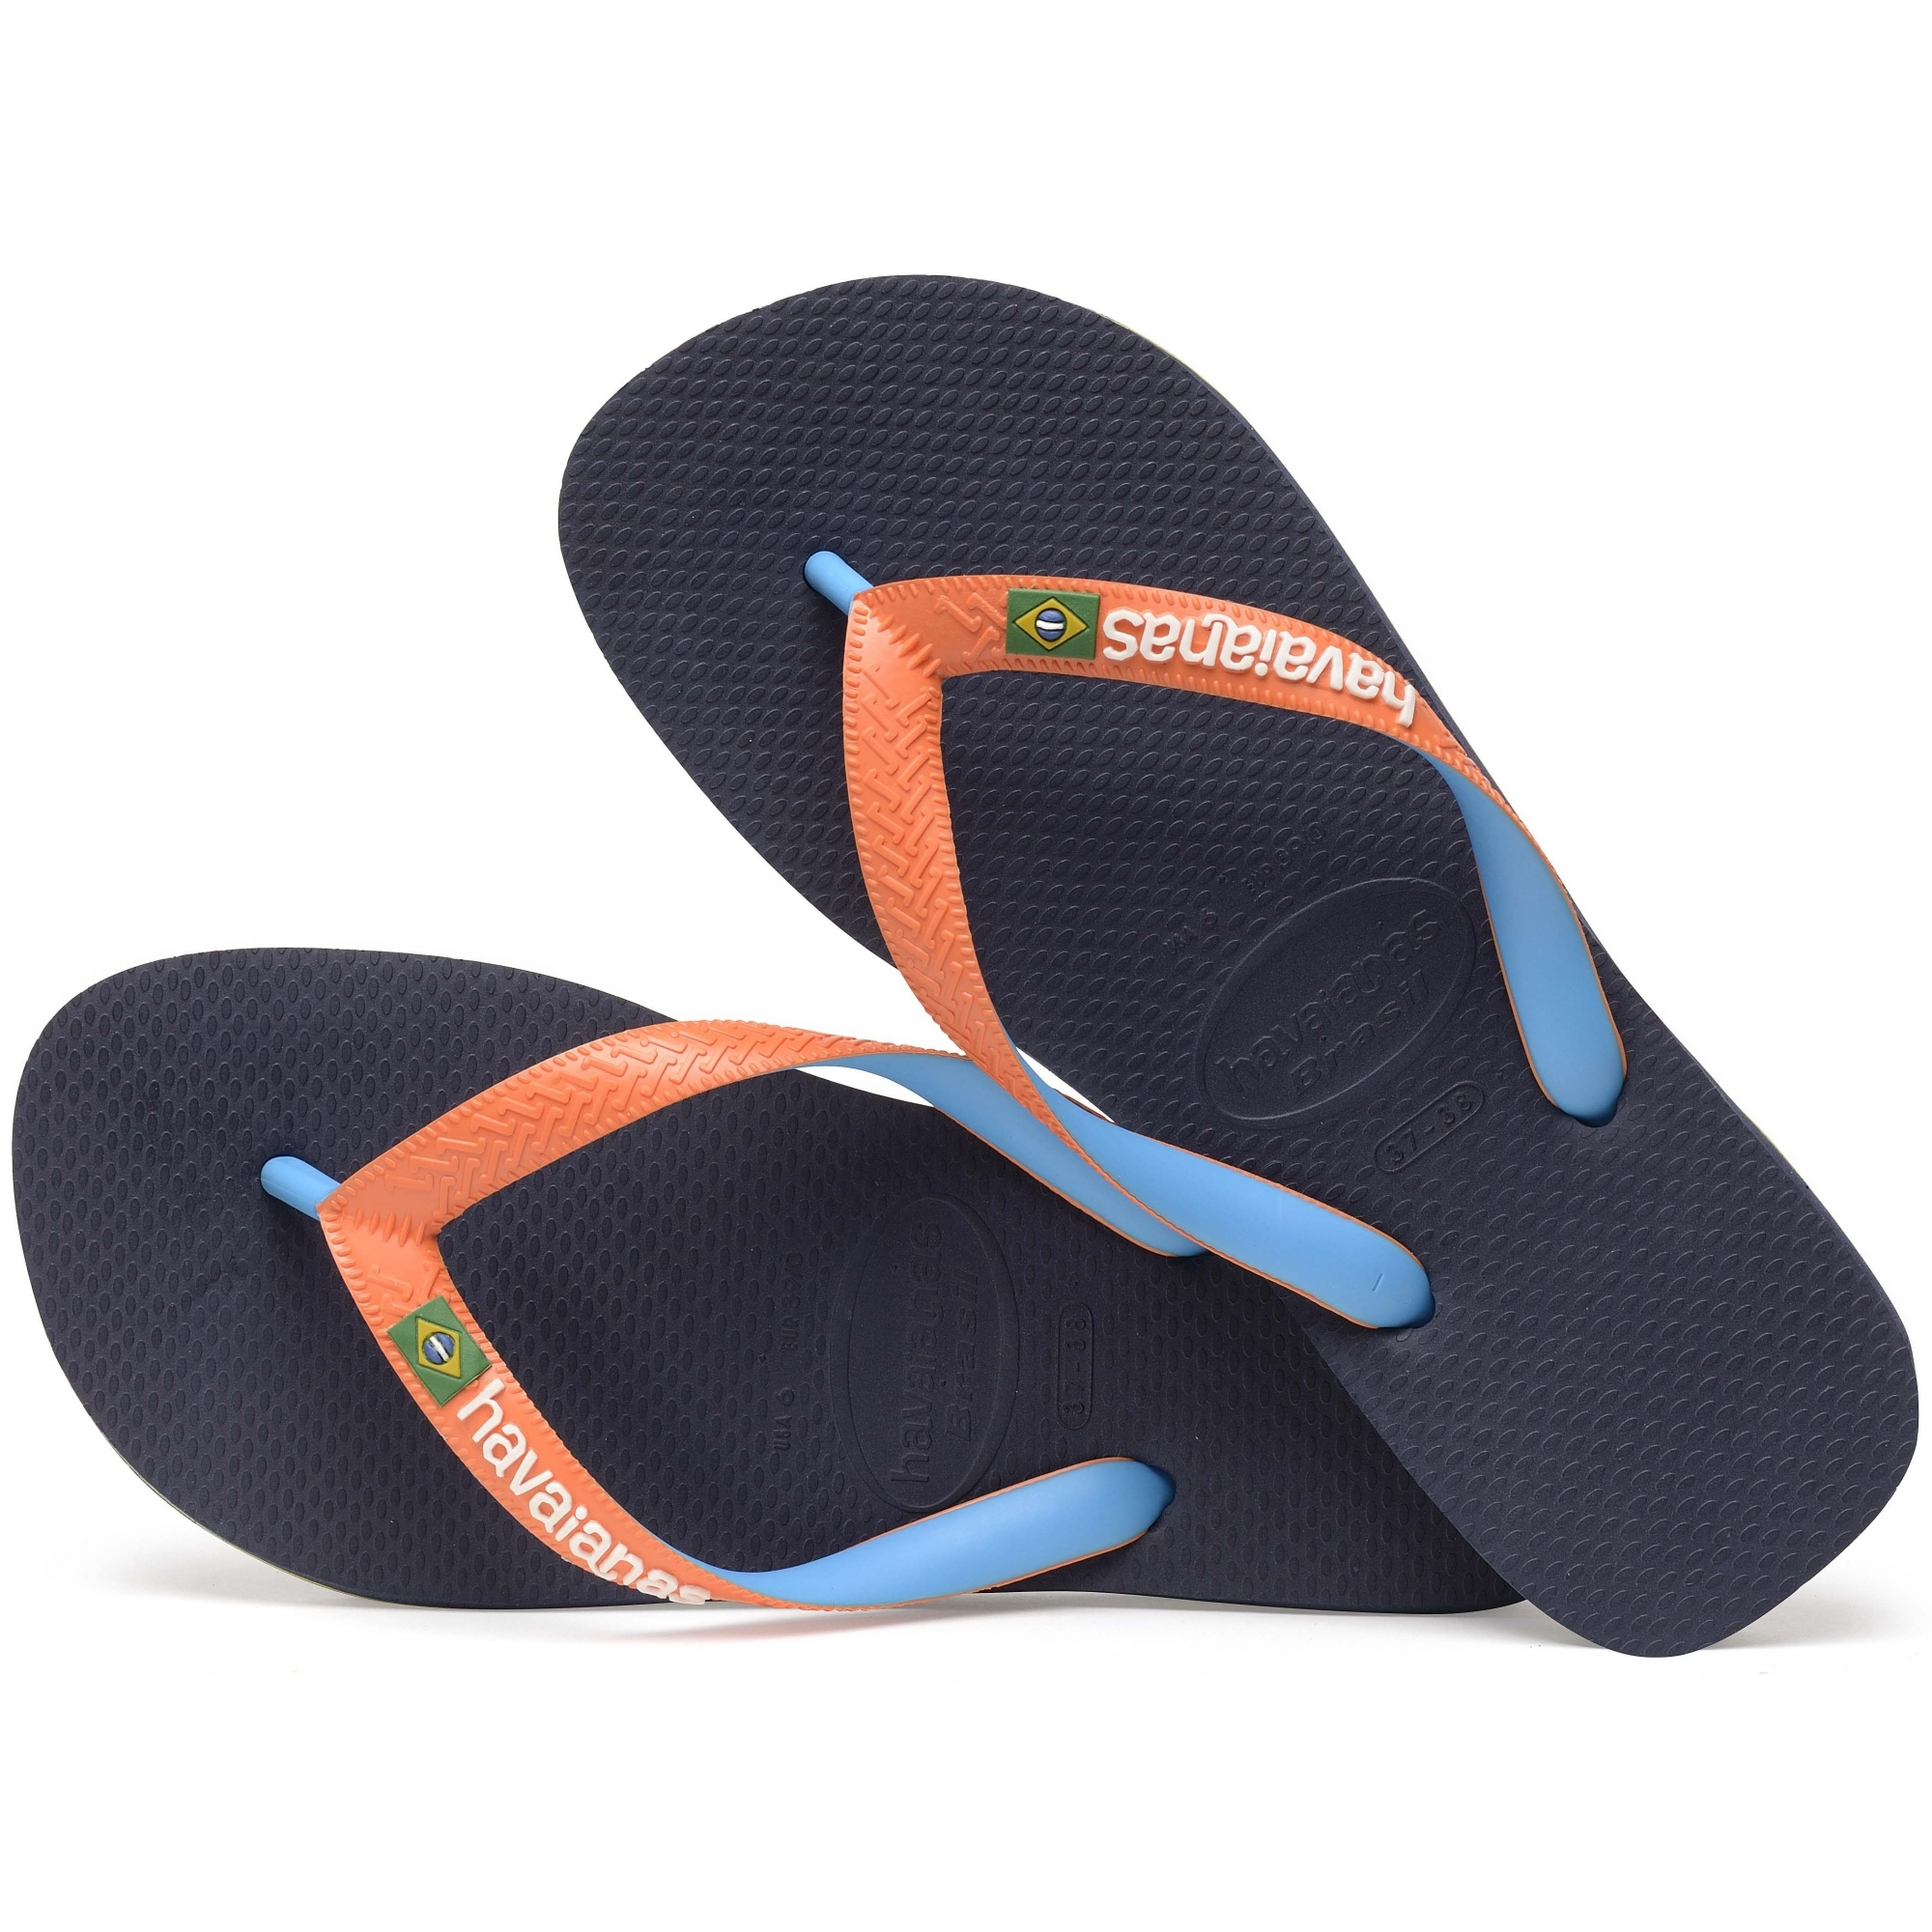 ad9e0eeaed387 Havaianas HAV BRASIL MIX Mens Flip Flops Navy Neon Orange